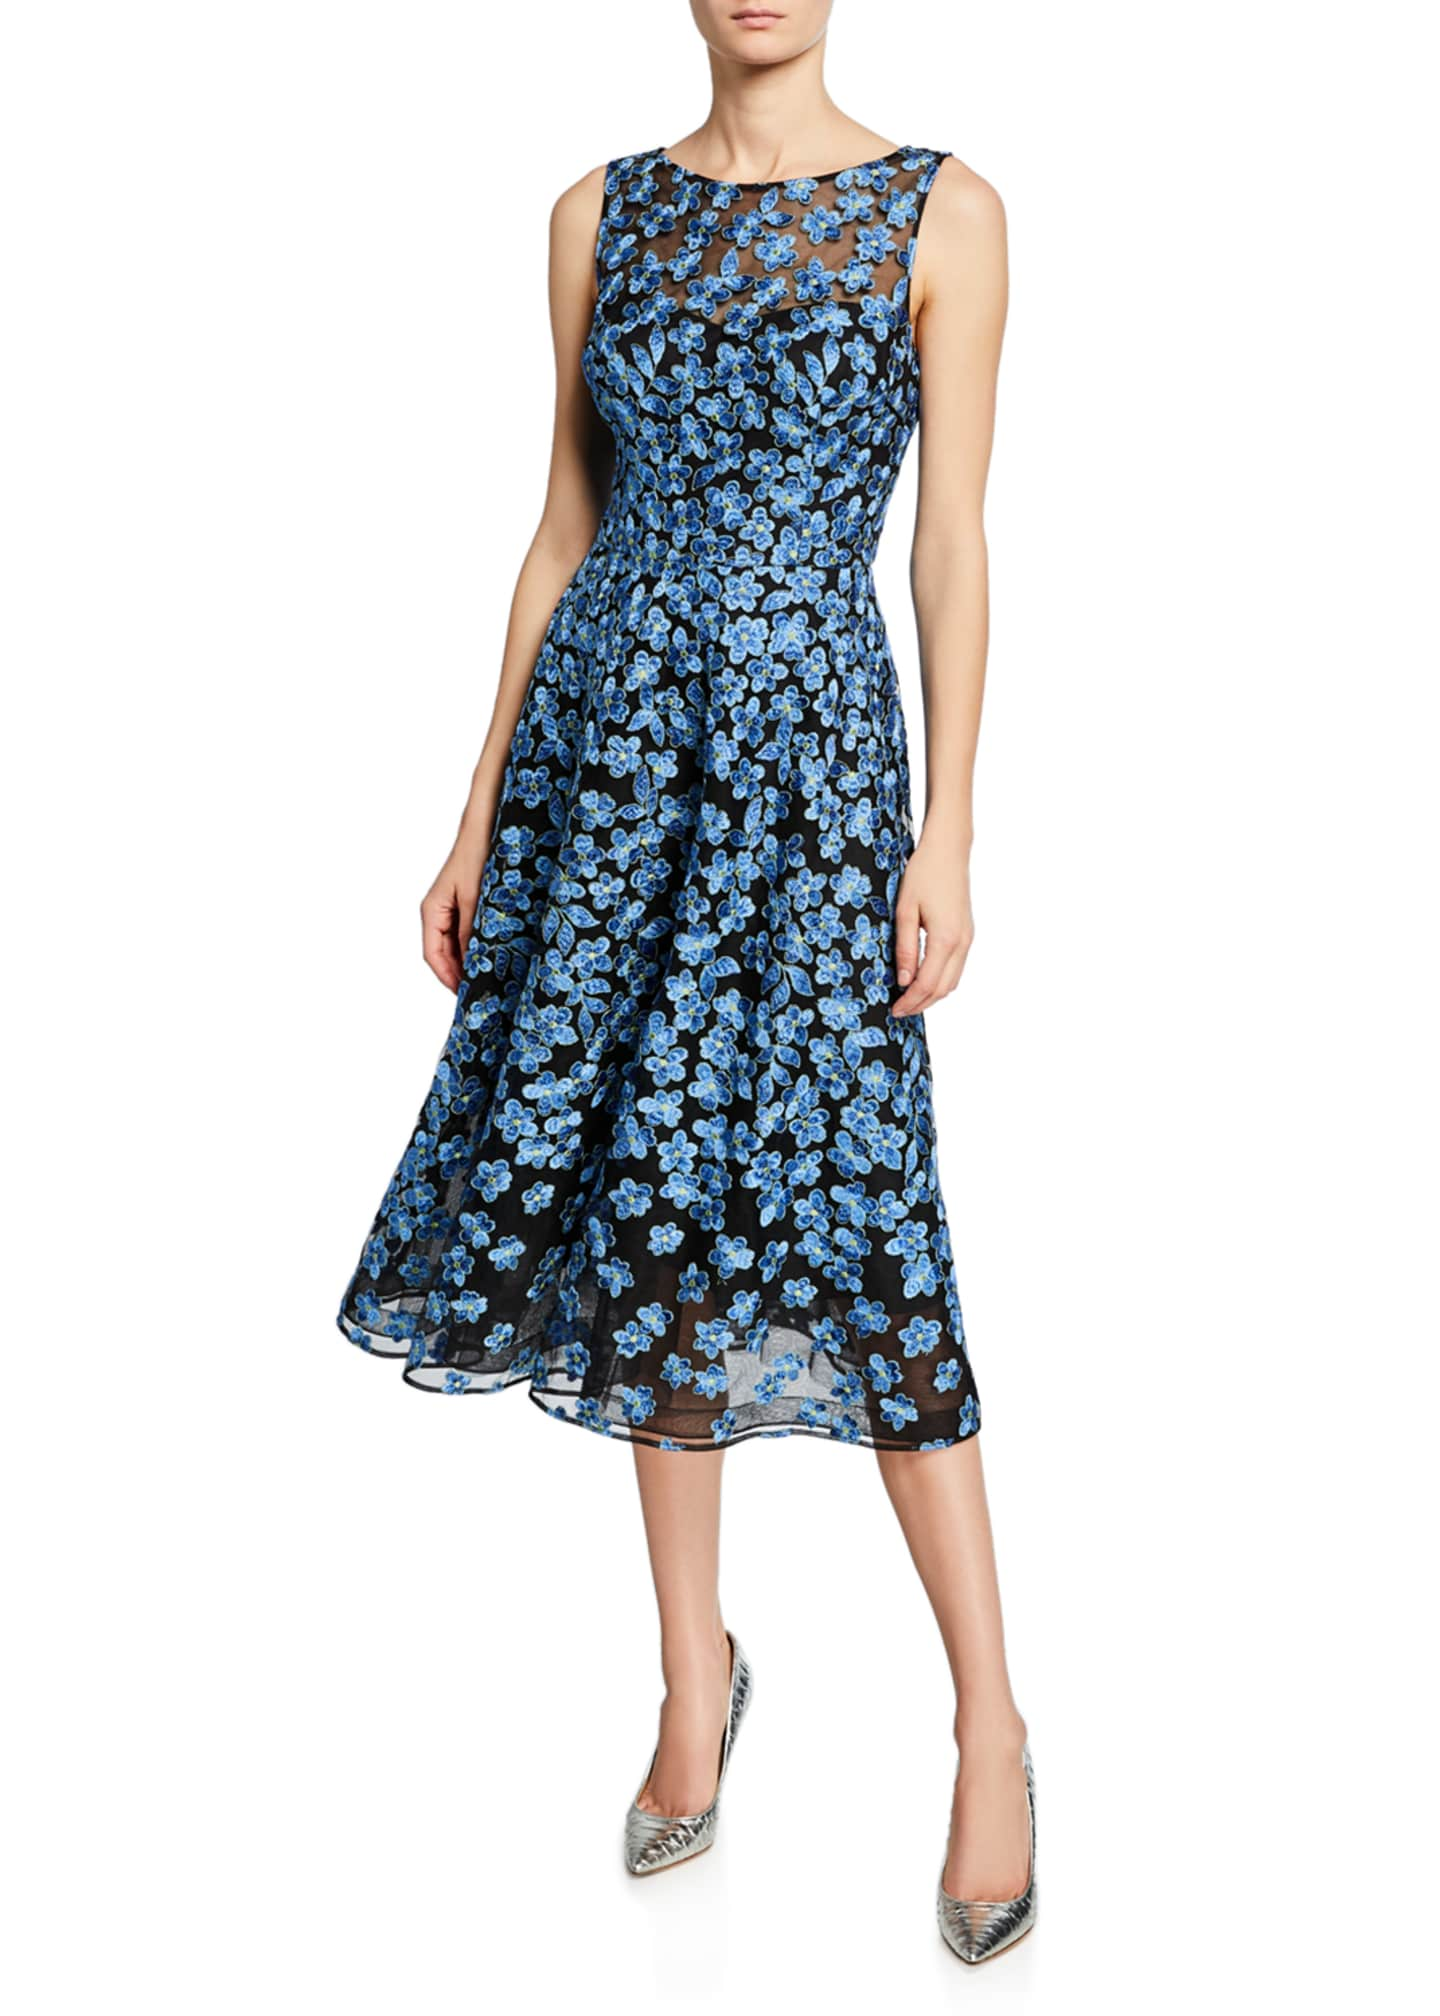 Rickie Freeman for Teri Jon Sleeveless Floral Embroidery